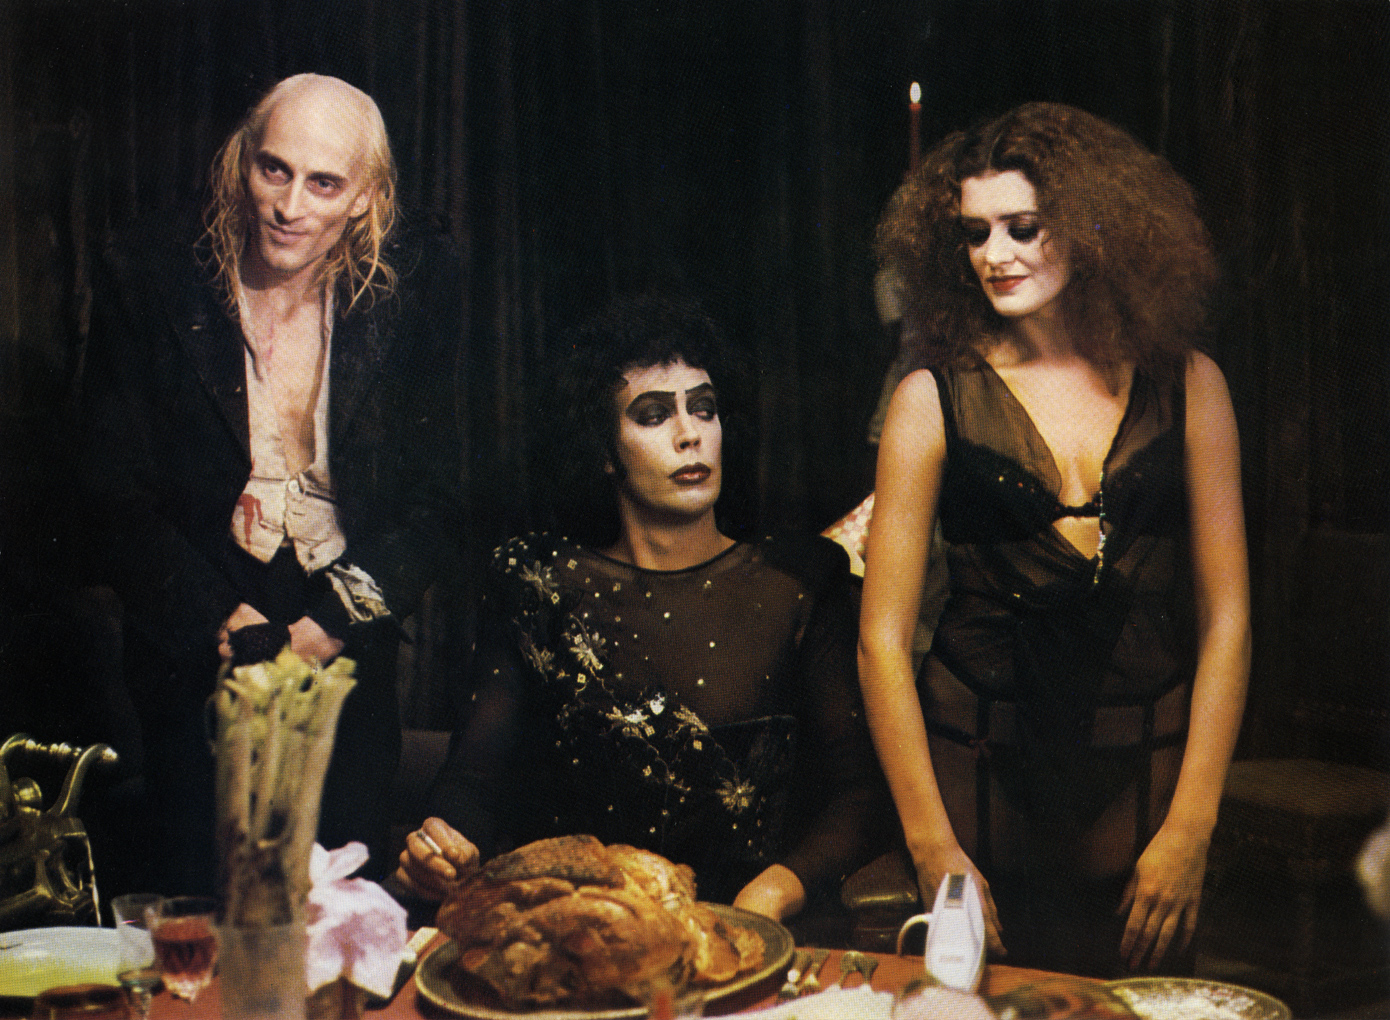 RockyMusic - Rocky Horror Picture Show (Lobby Card #6) image